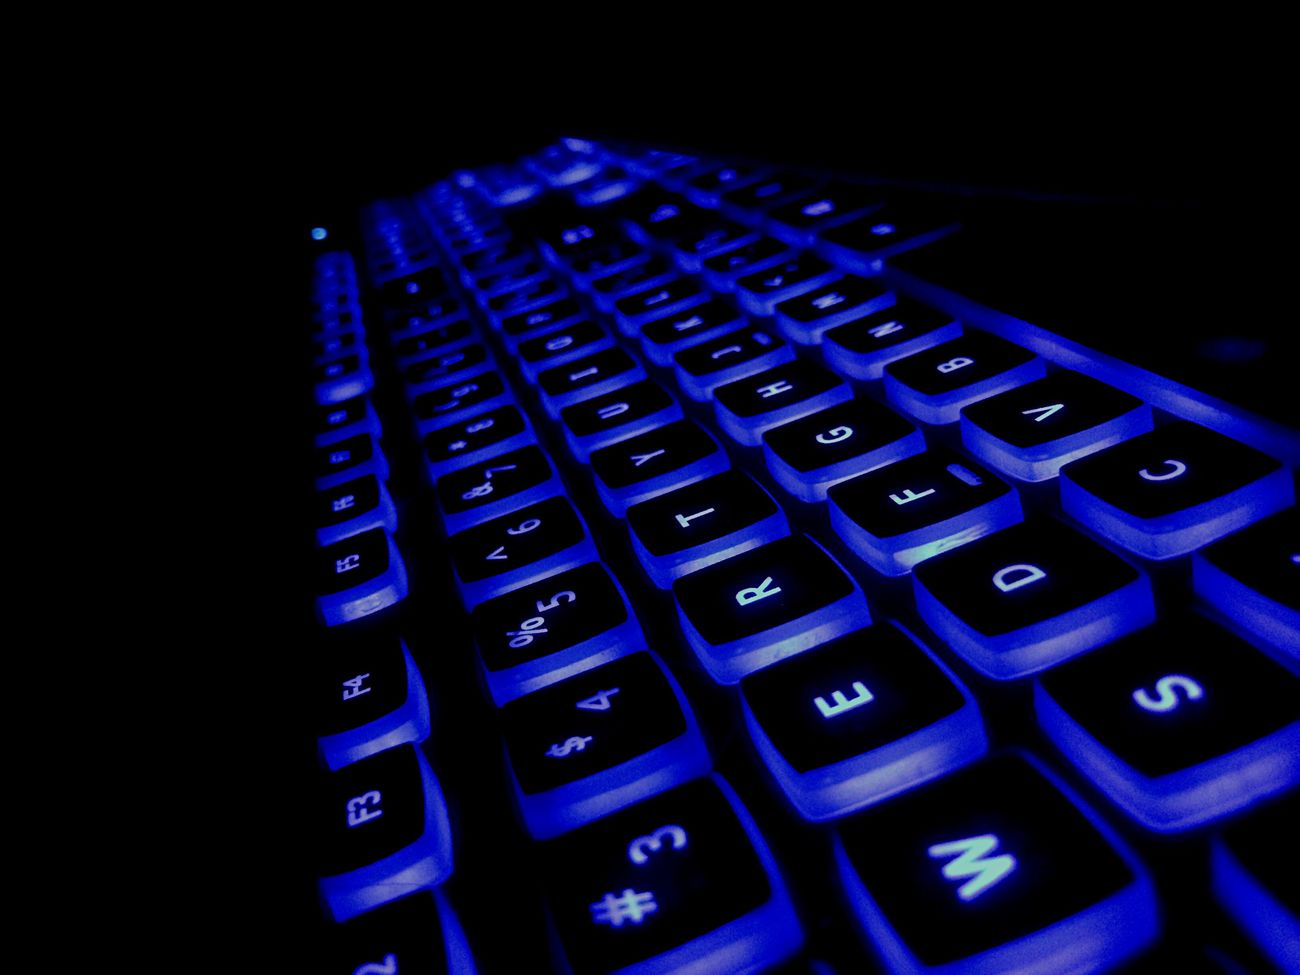 Computer Keyboard Blue Technology Close-up Computer Key Night No People First Eyem Photo FirstEyeEmPic Comments Are Welcome Testing Tesing, 1 2 3 Test EyeEm Testing EyeEm Test Shot